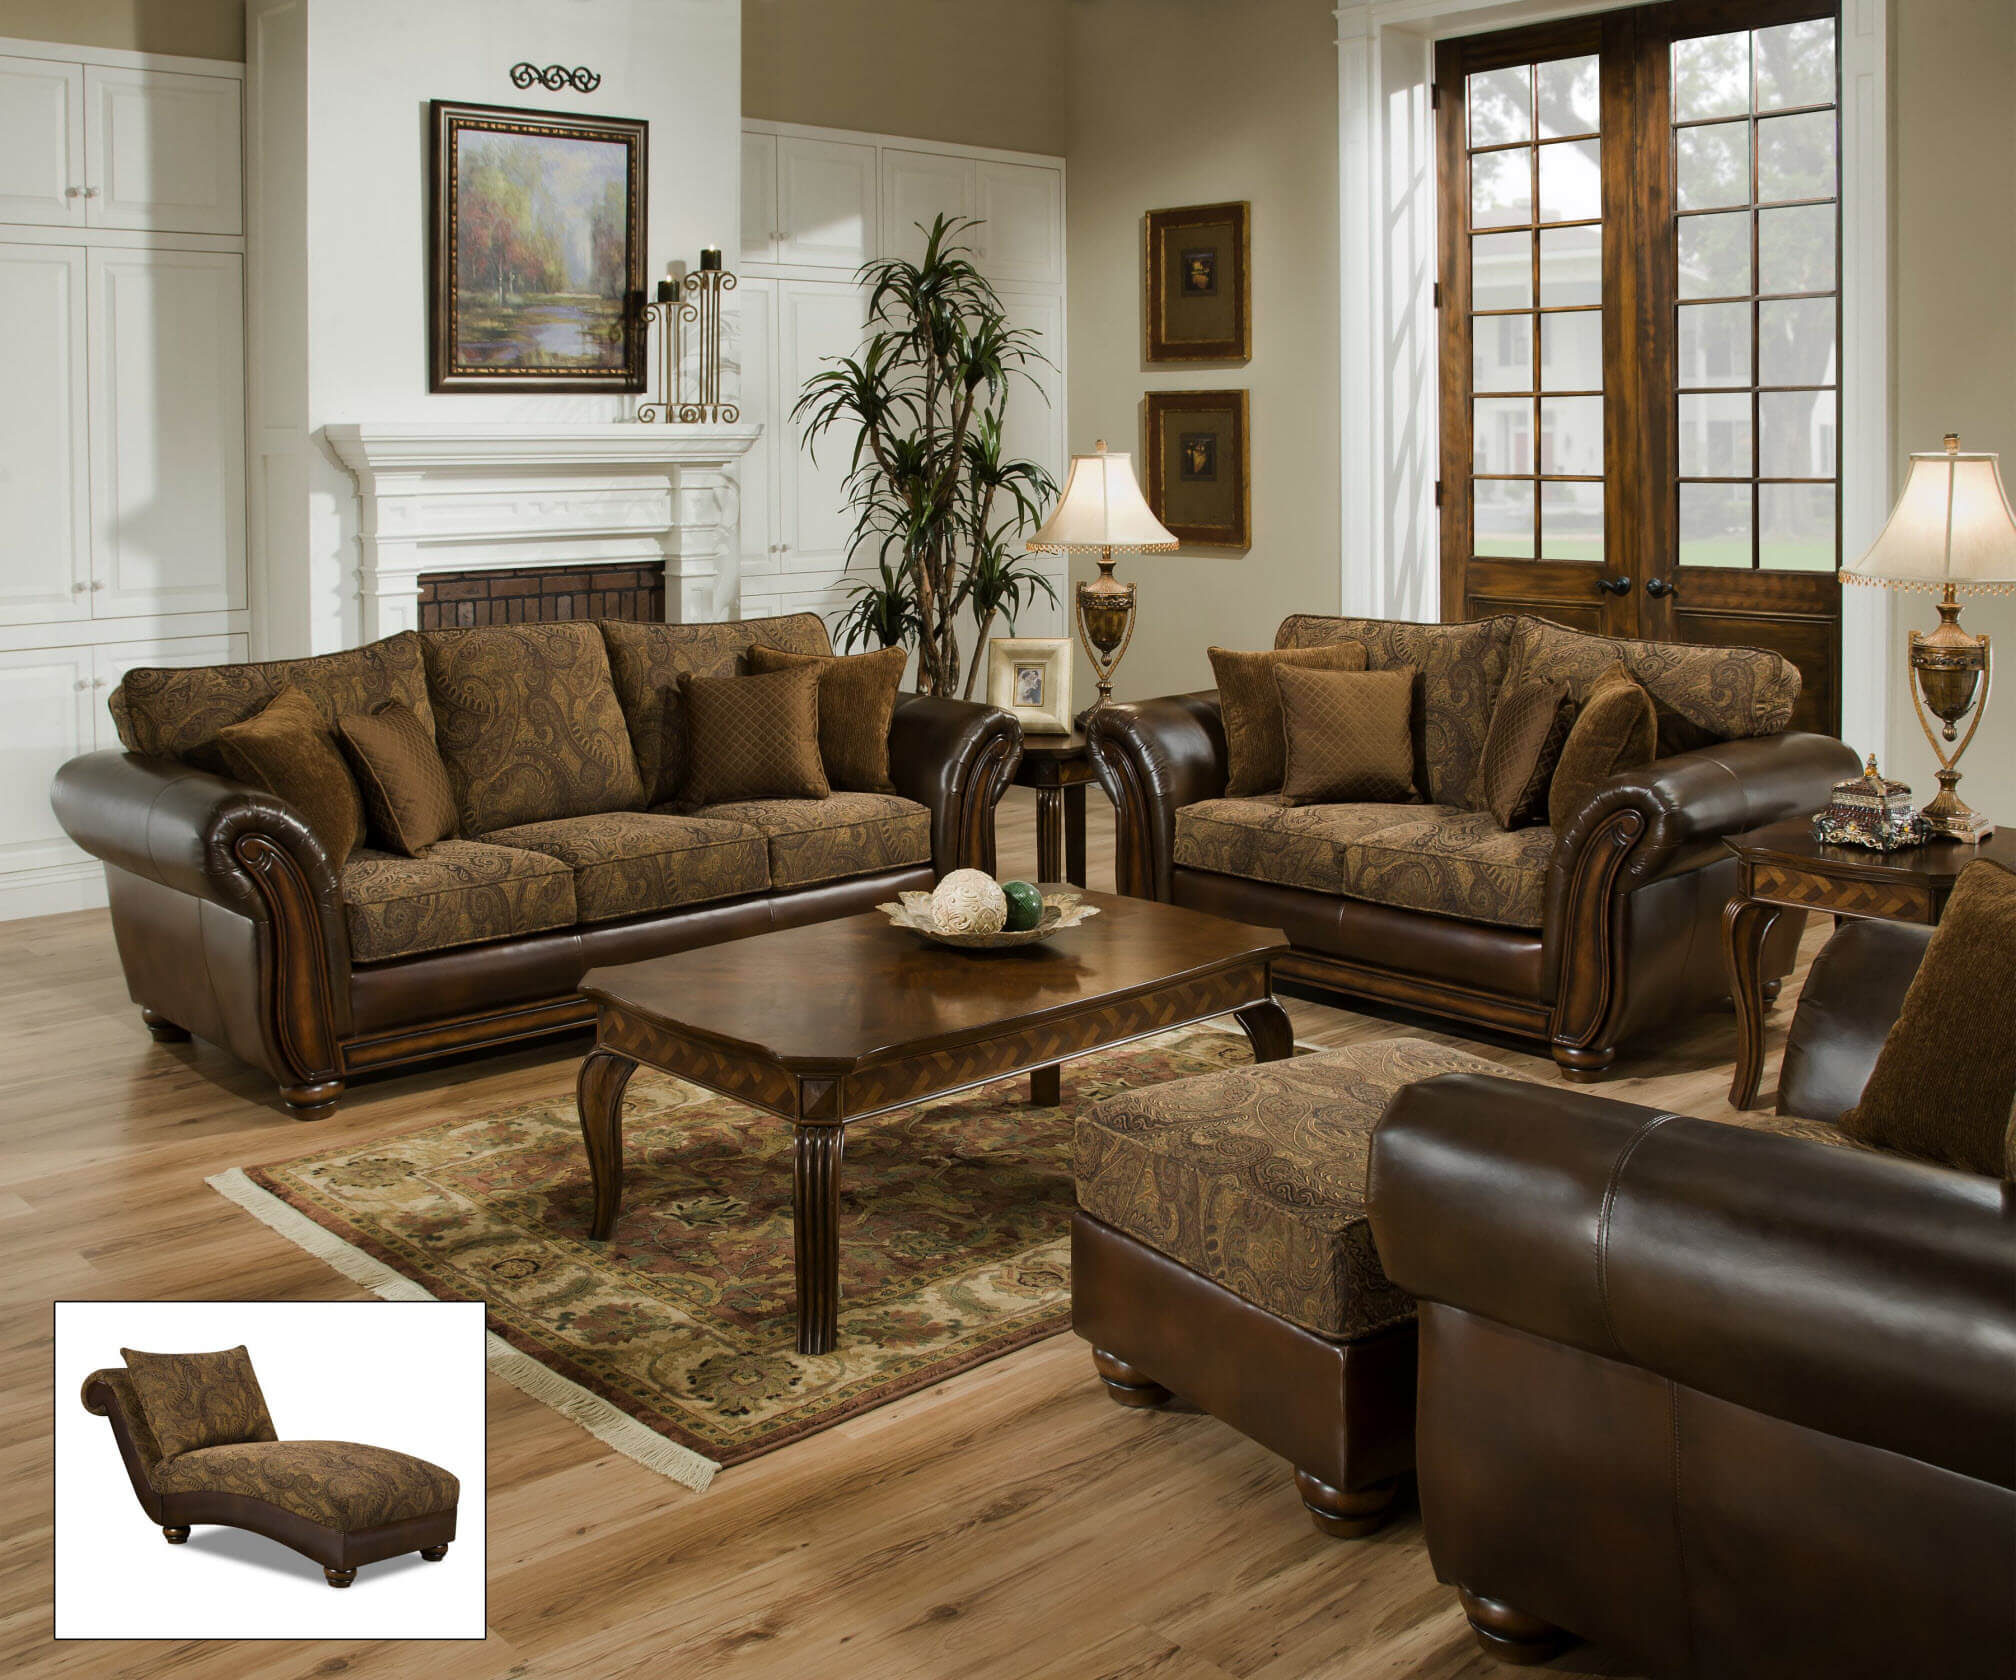 Simmons Living Room Set. Fabric Living Room Sets Zephyr Vintage Tobacco Sofa and Loveseat